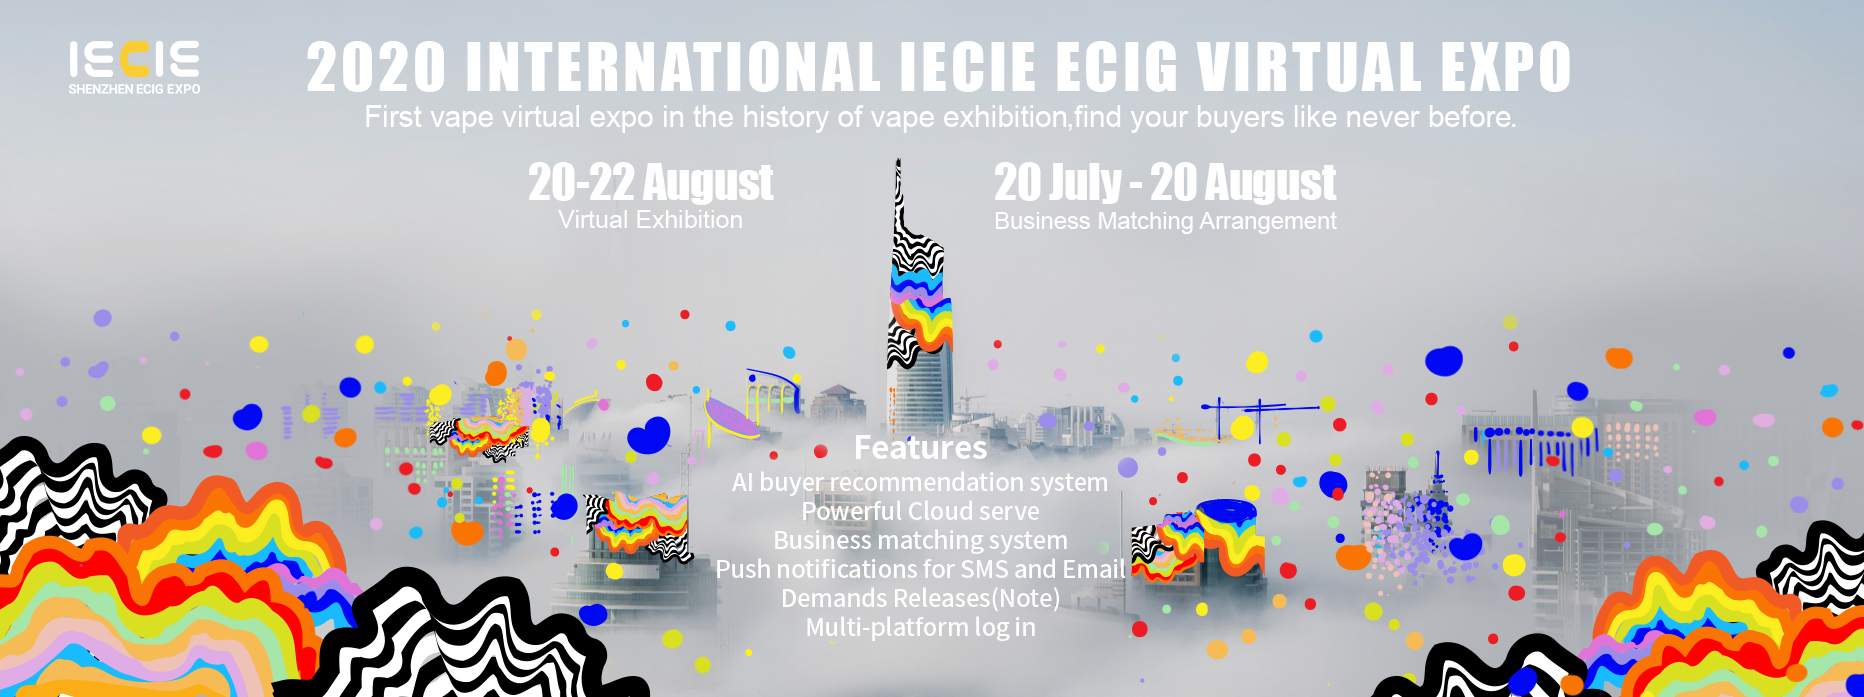 E-Cig Expo On August 20-22, 2020, Shenzhen